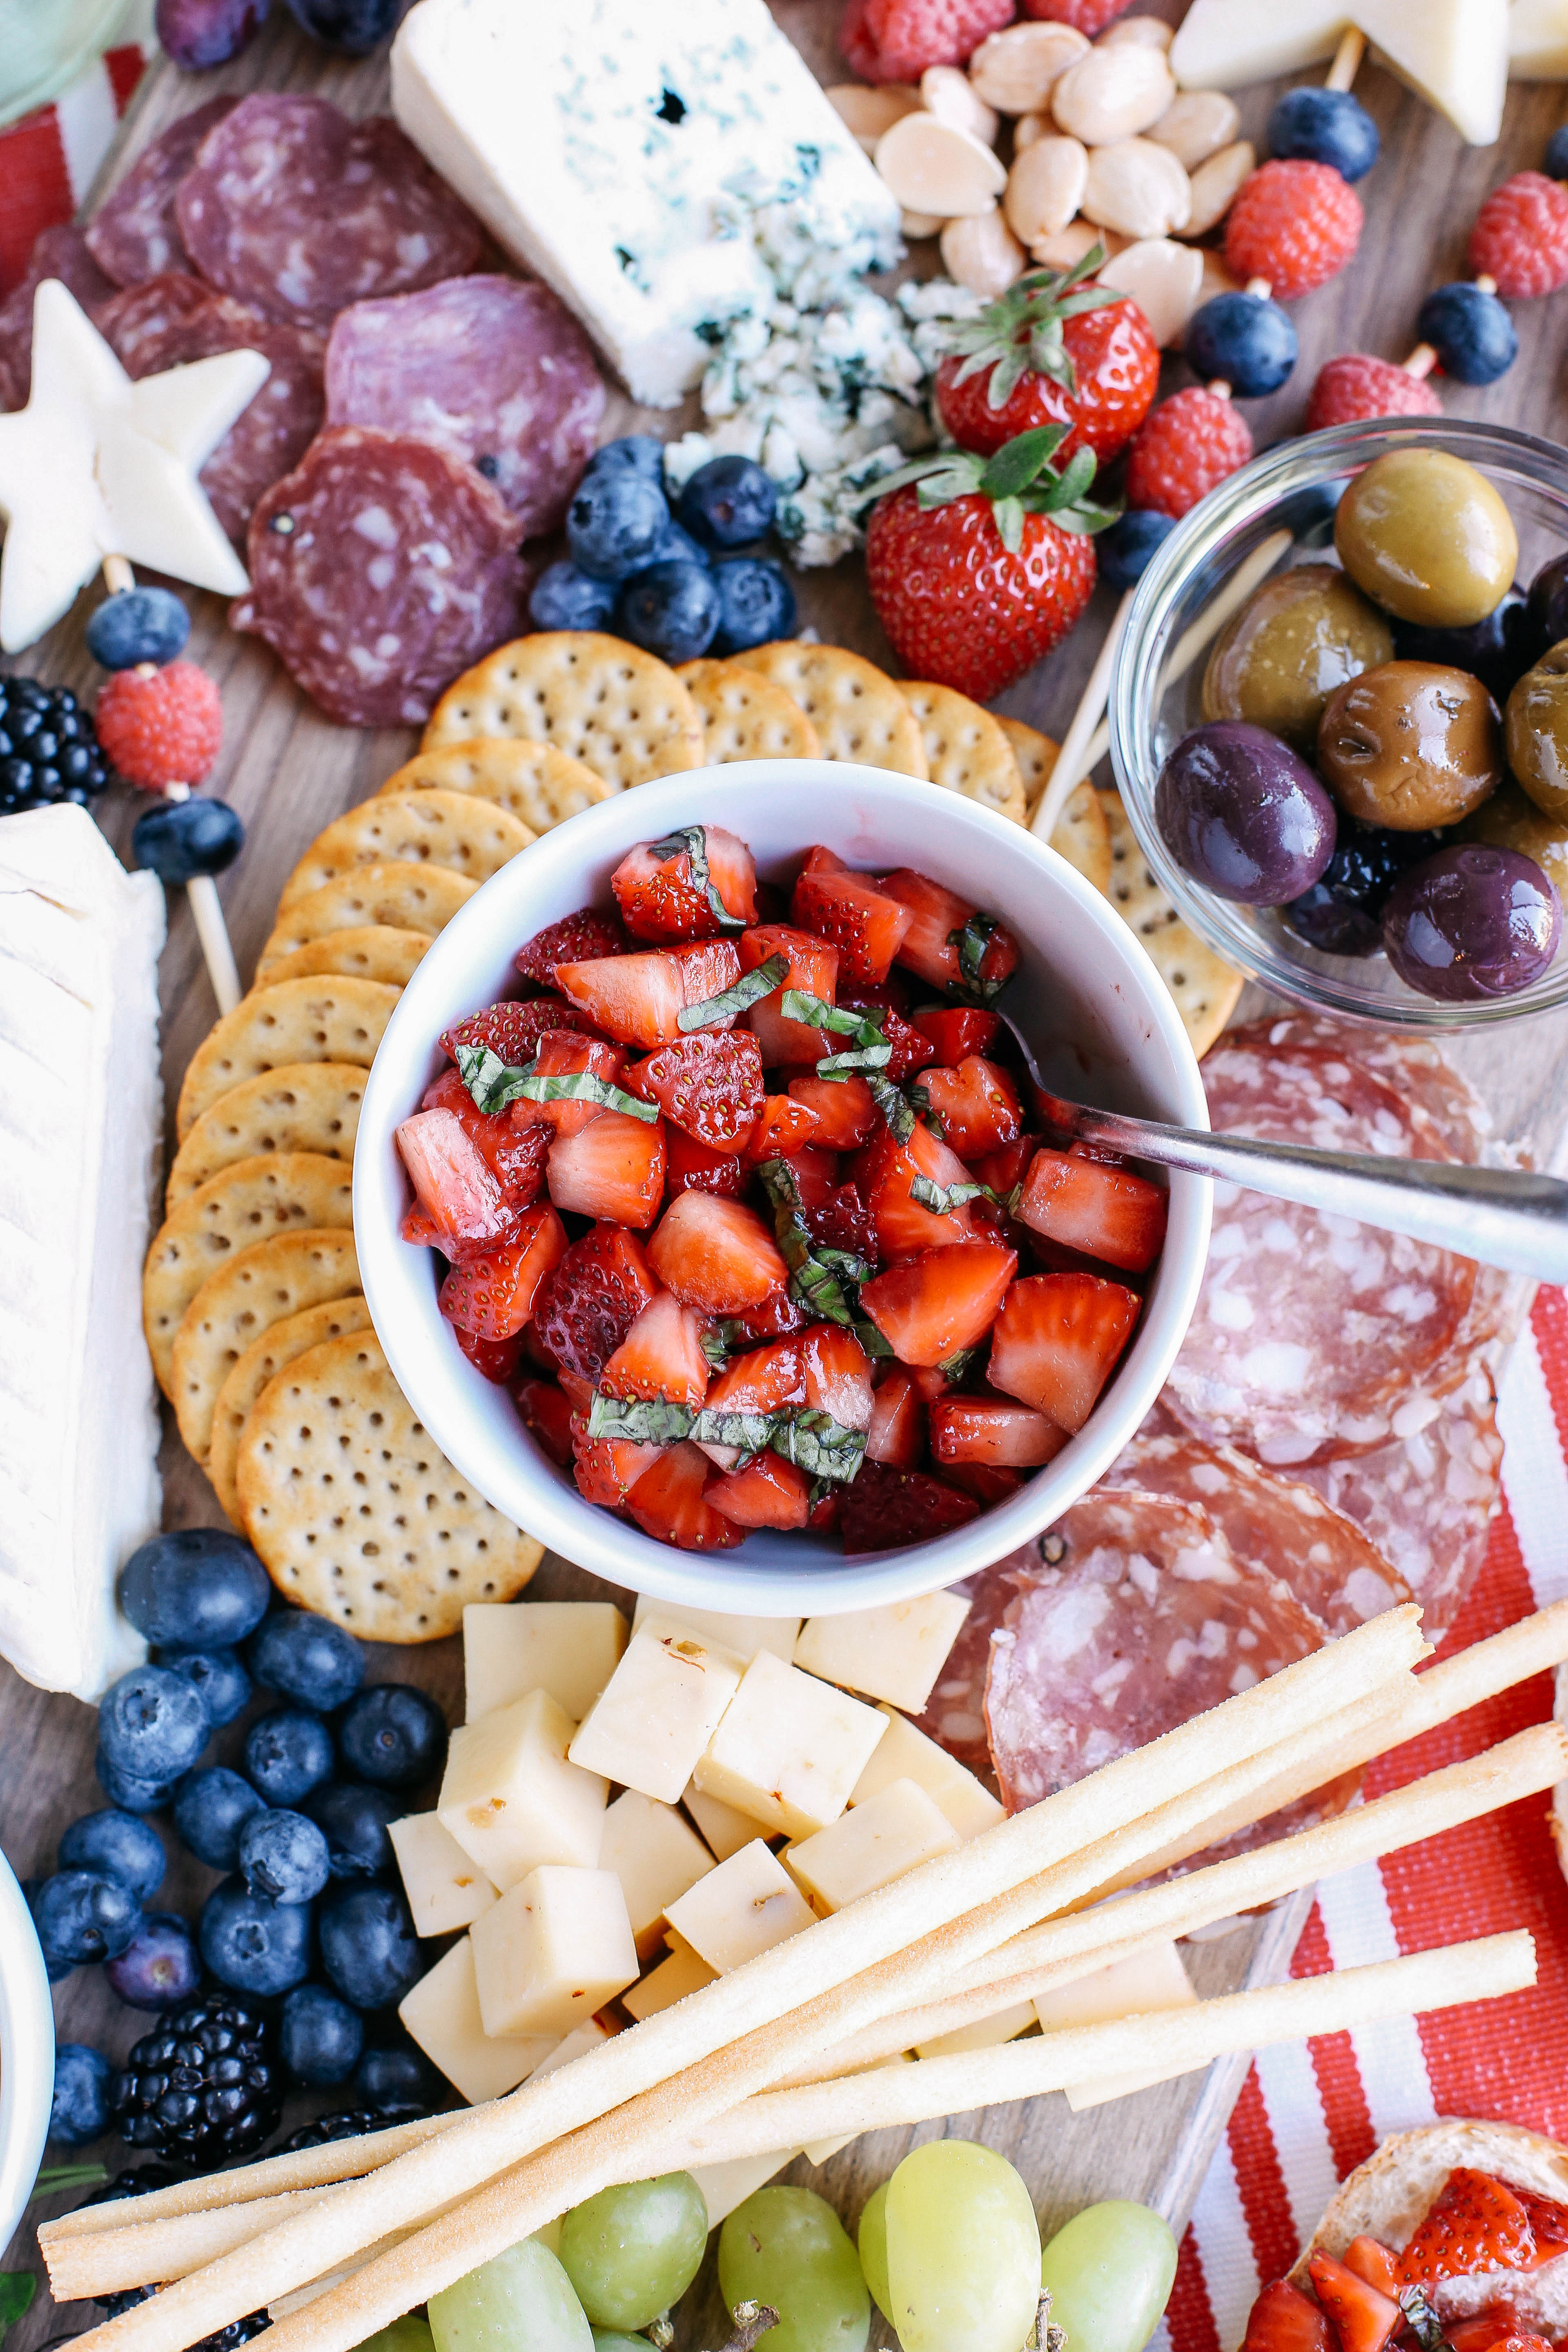 Memorial Day is right around the corner so kick off the summer with the Ultimate Patriotic Cheeseboard! Grab your favorite bottle of wine and share this festive appetizer with your friends and family this holiday!